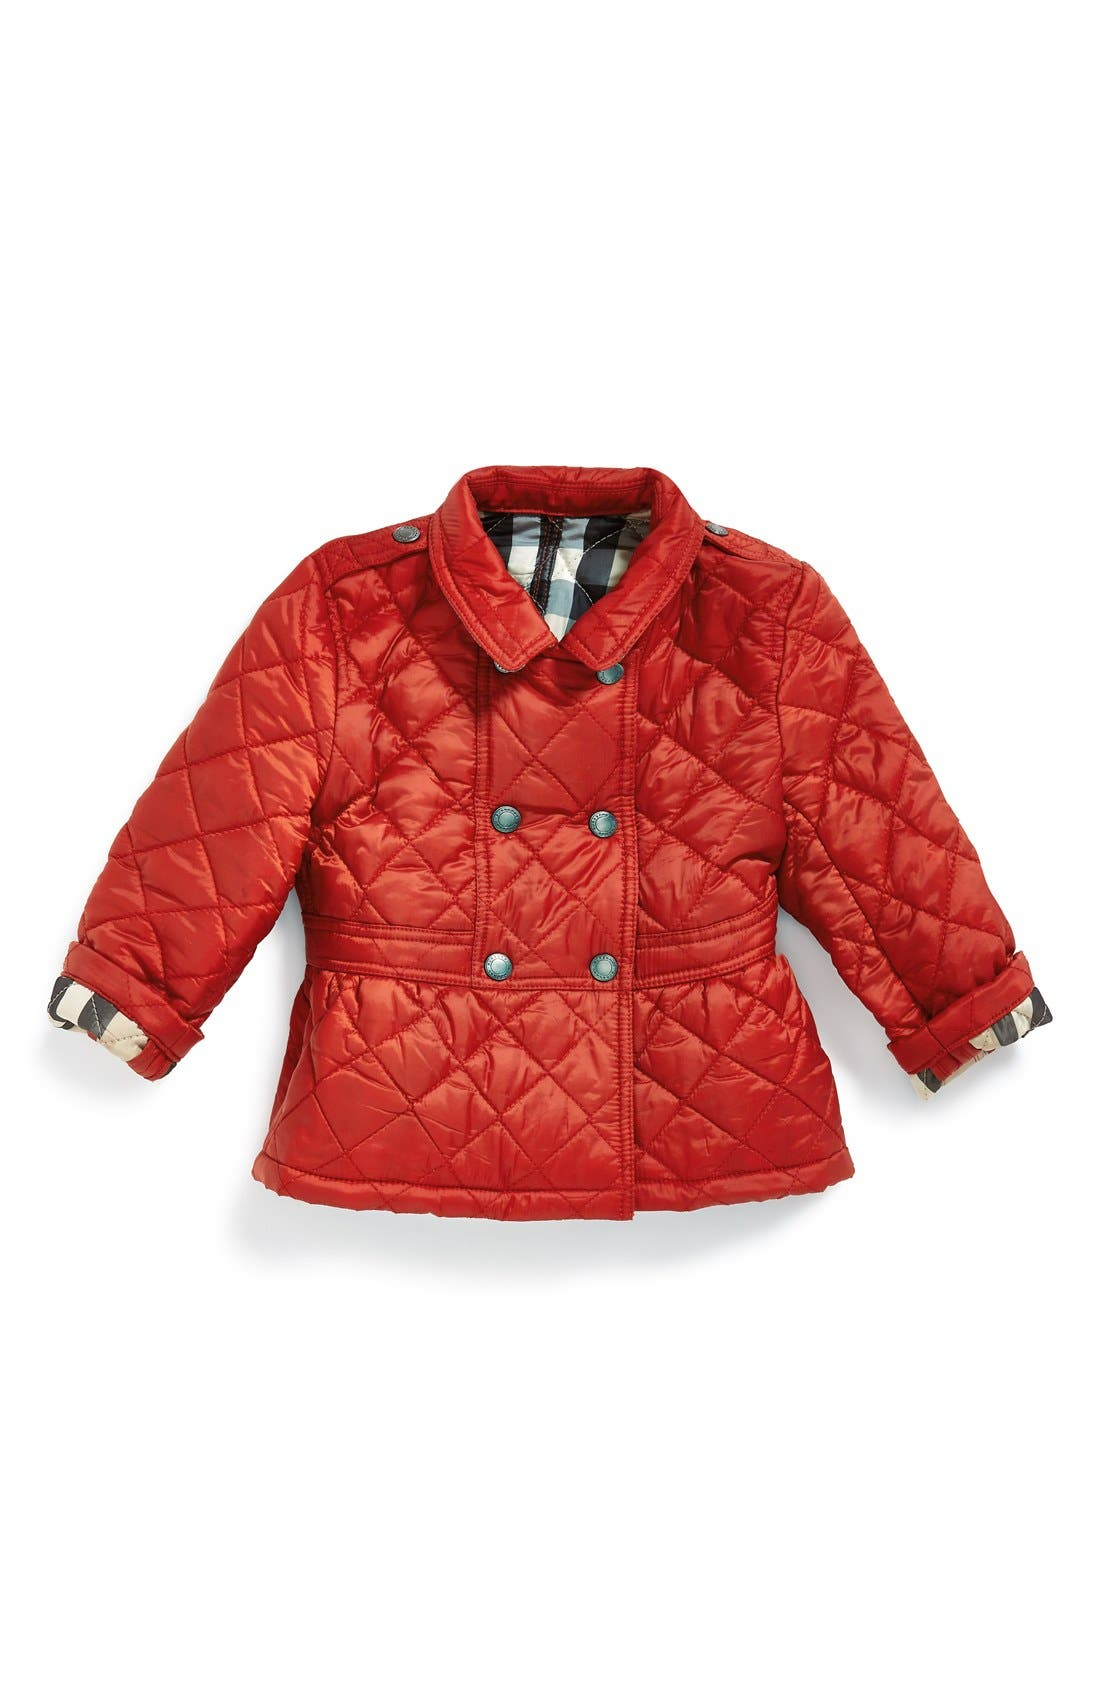 Main Image - Burberry Water Resistant Quilted Nylon Jacket (Baby Girls)